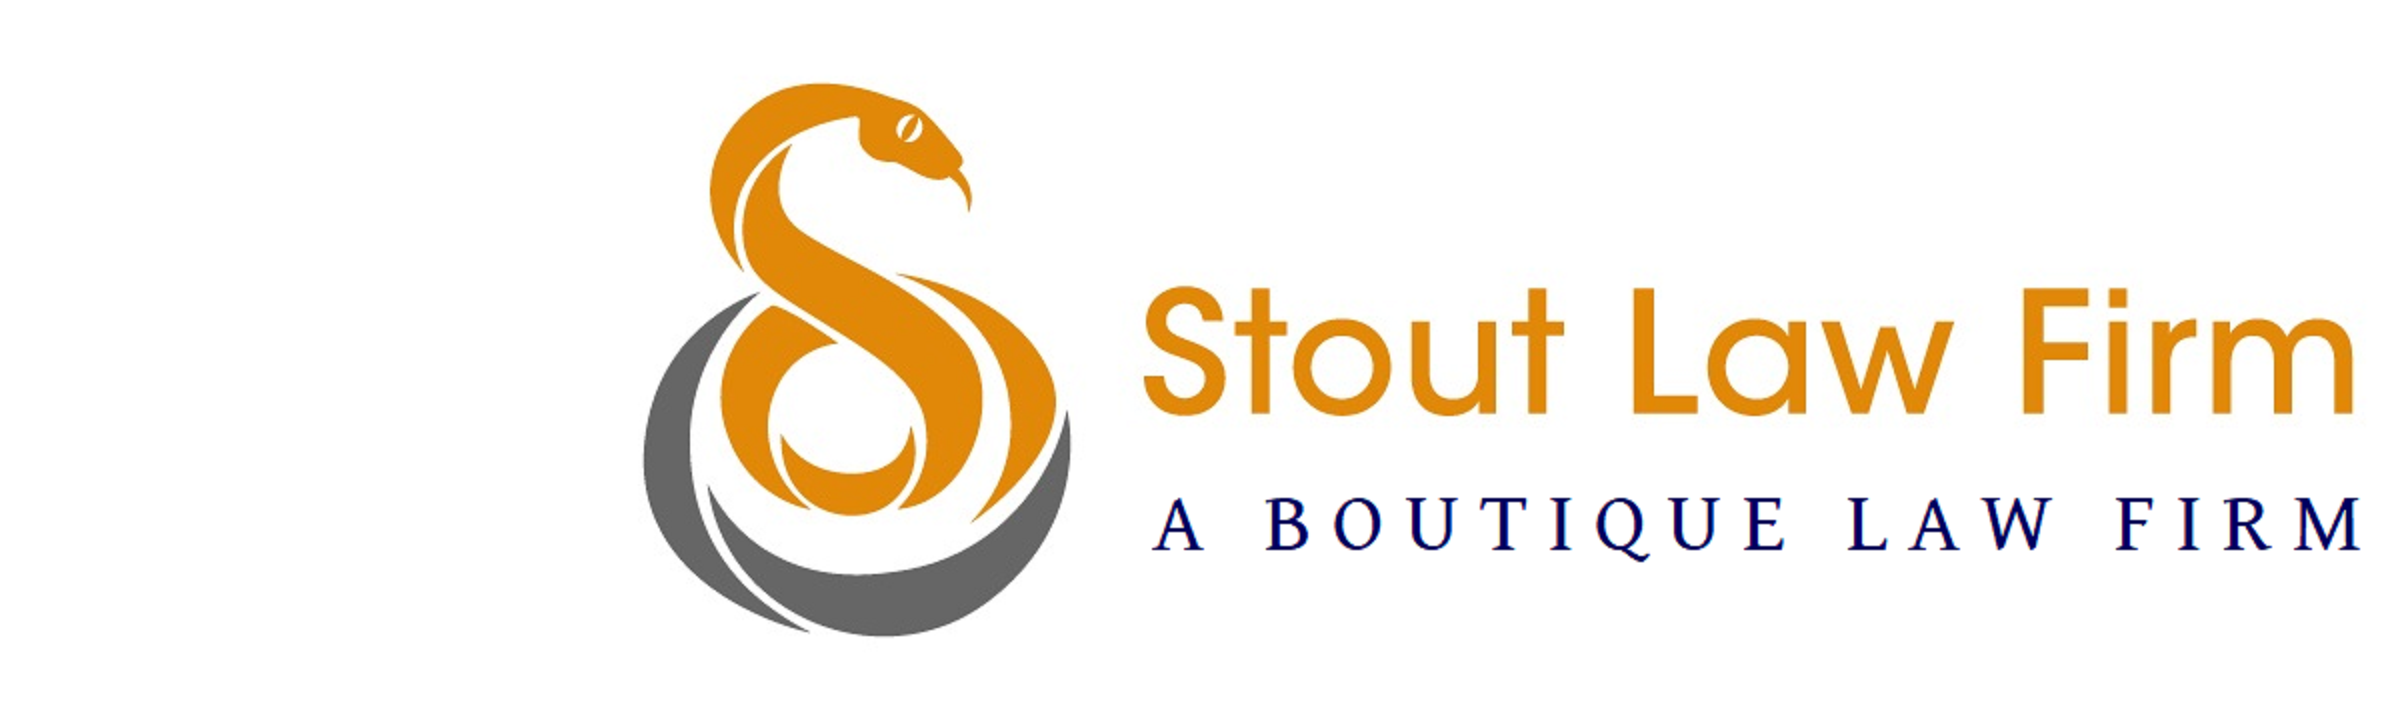 Best Lawyer Logos – Stout Law Firm